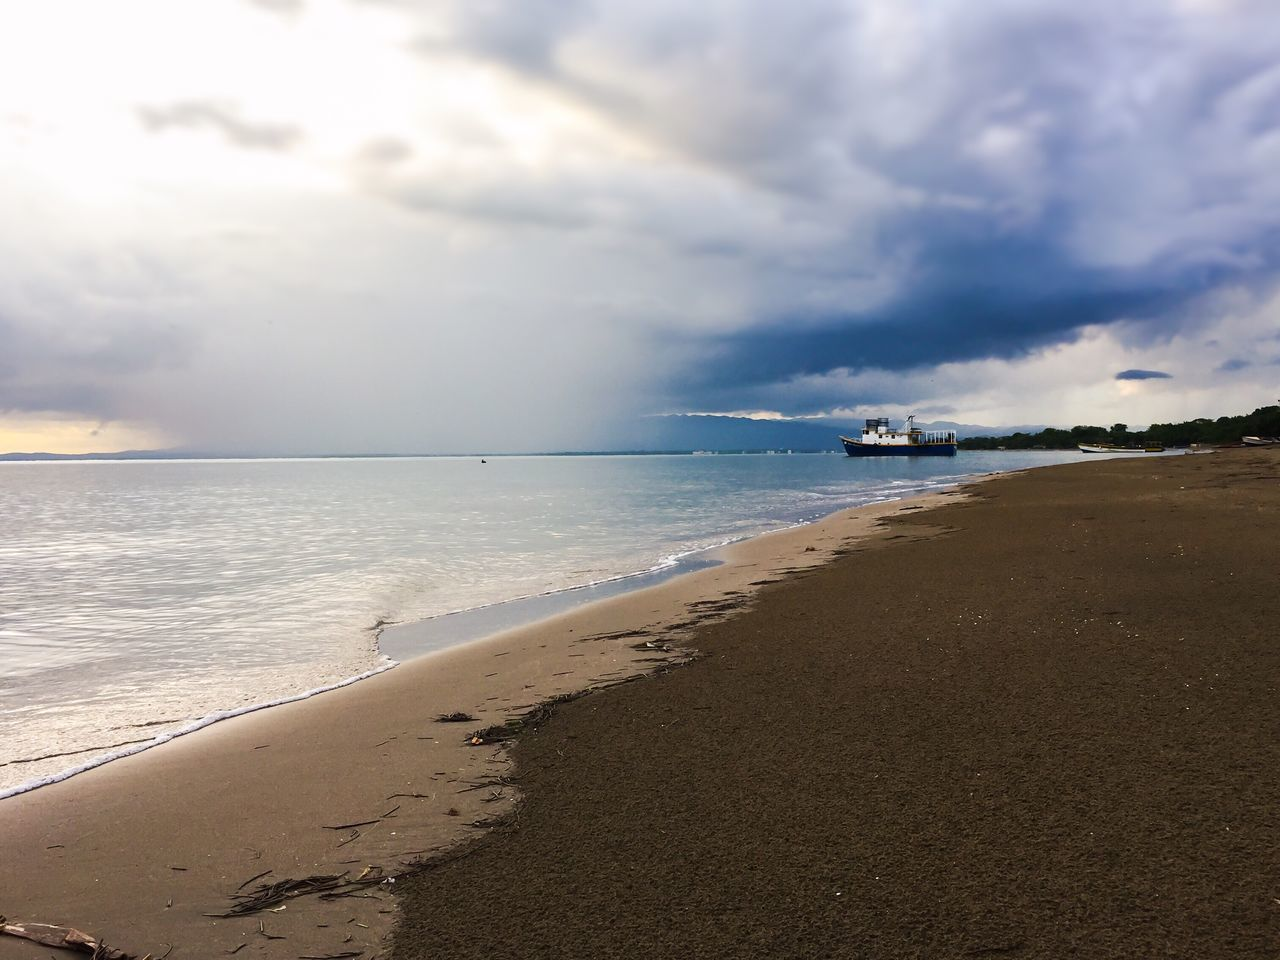 Parottee Bay / Black River | Jamaica Sea Beach Sky Sand Water Cloud - Sky Horizon Over Water Beauty In Nature Scenics Nature Shore Tranquil Scene Tranquility Day Vacations Outdoors No People Travel Destinations Wave Neighborhood Map The Great Outdoors - 2017 EyeEm Awards Tropical Climate Tropical Paradise Sunset